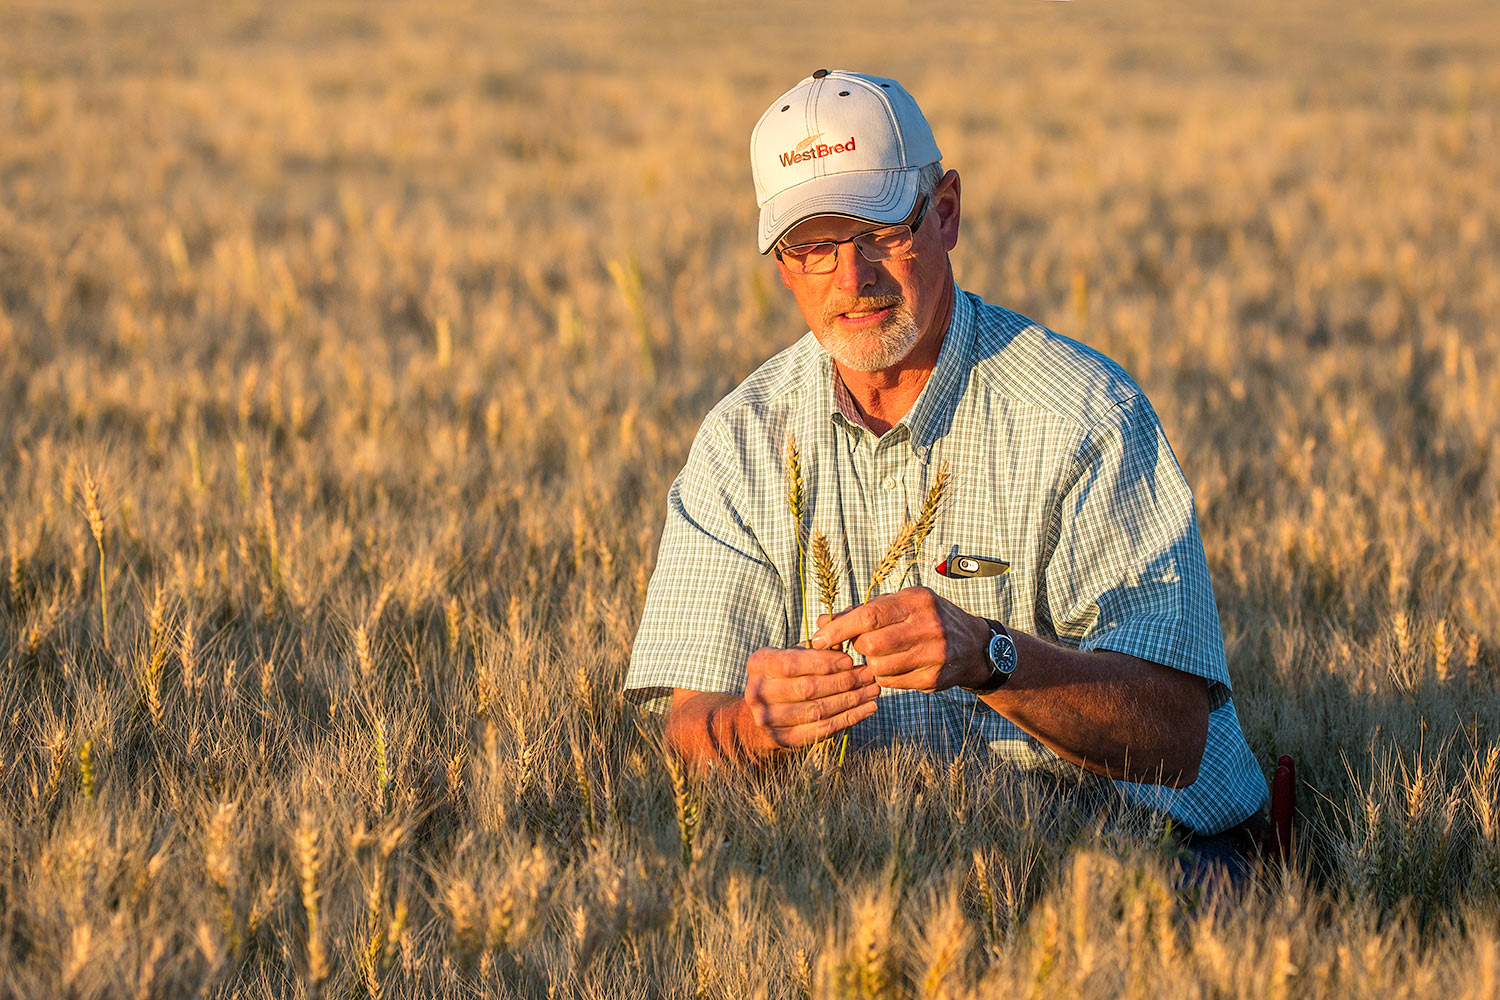 Checking Wheat